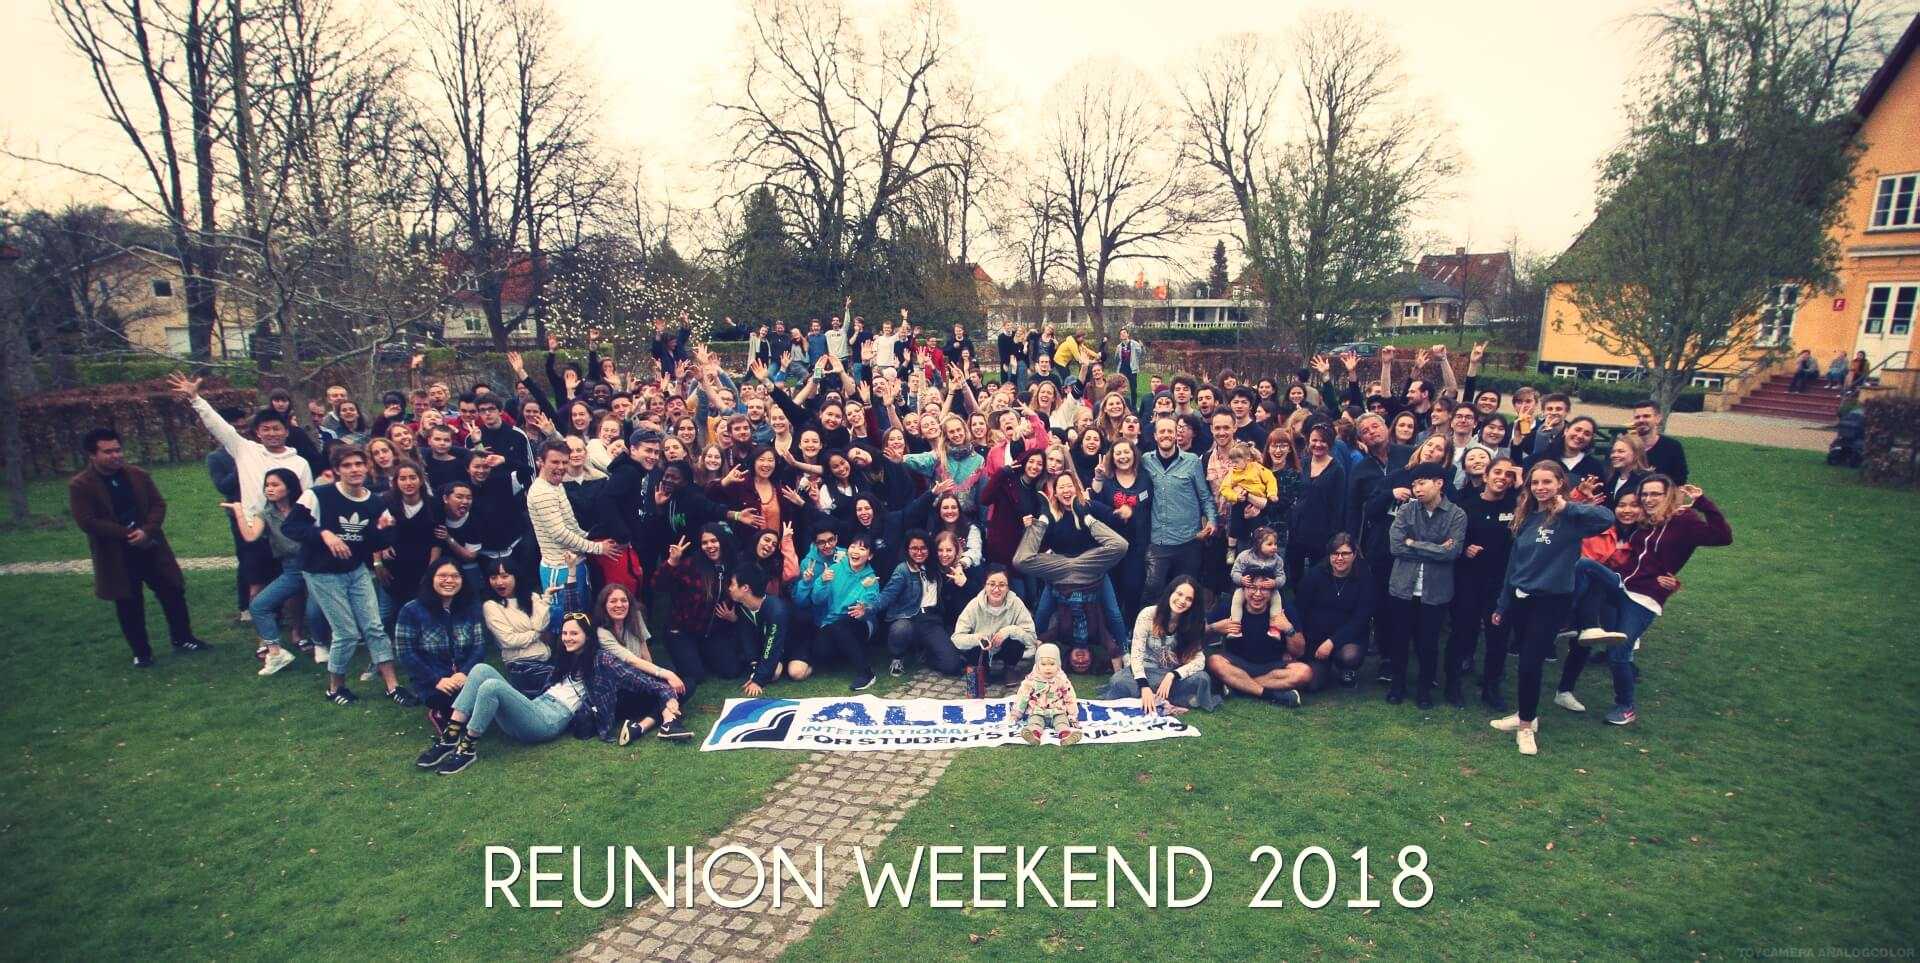 folk high school reunion weekend 2018 having fun at International People's college in Denmark